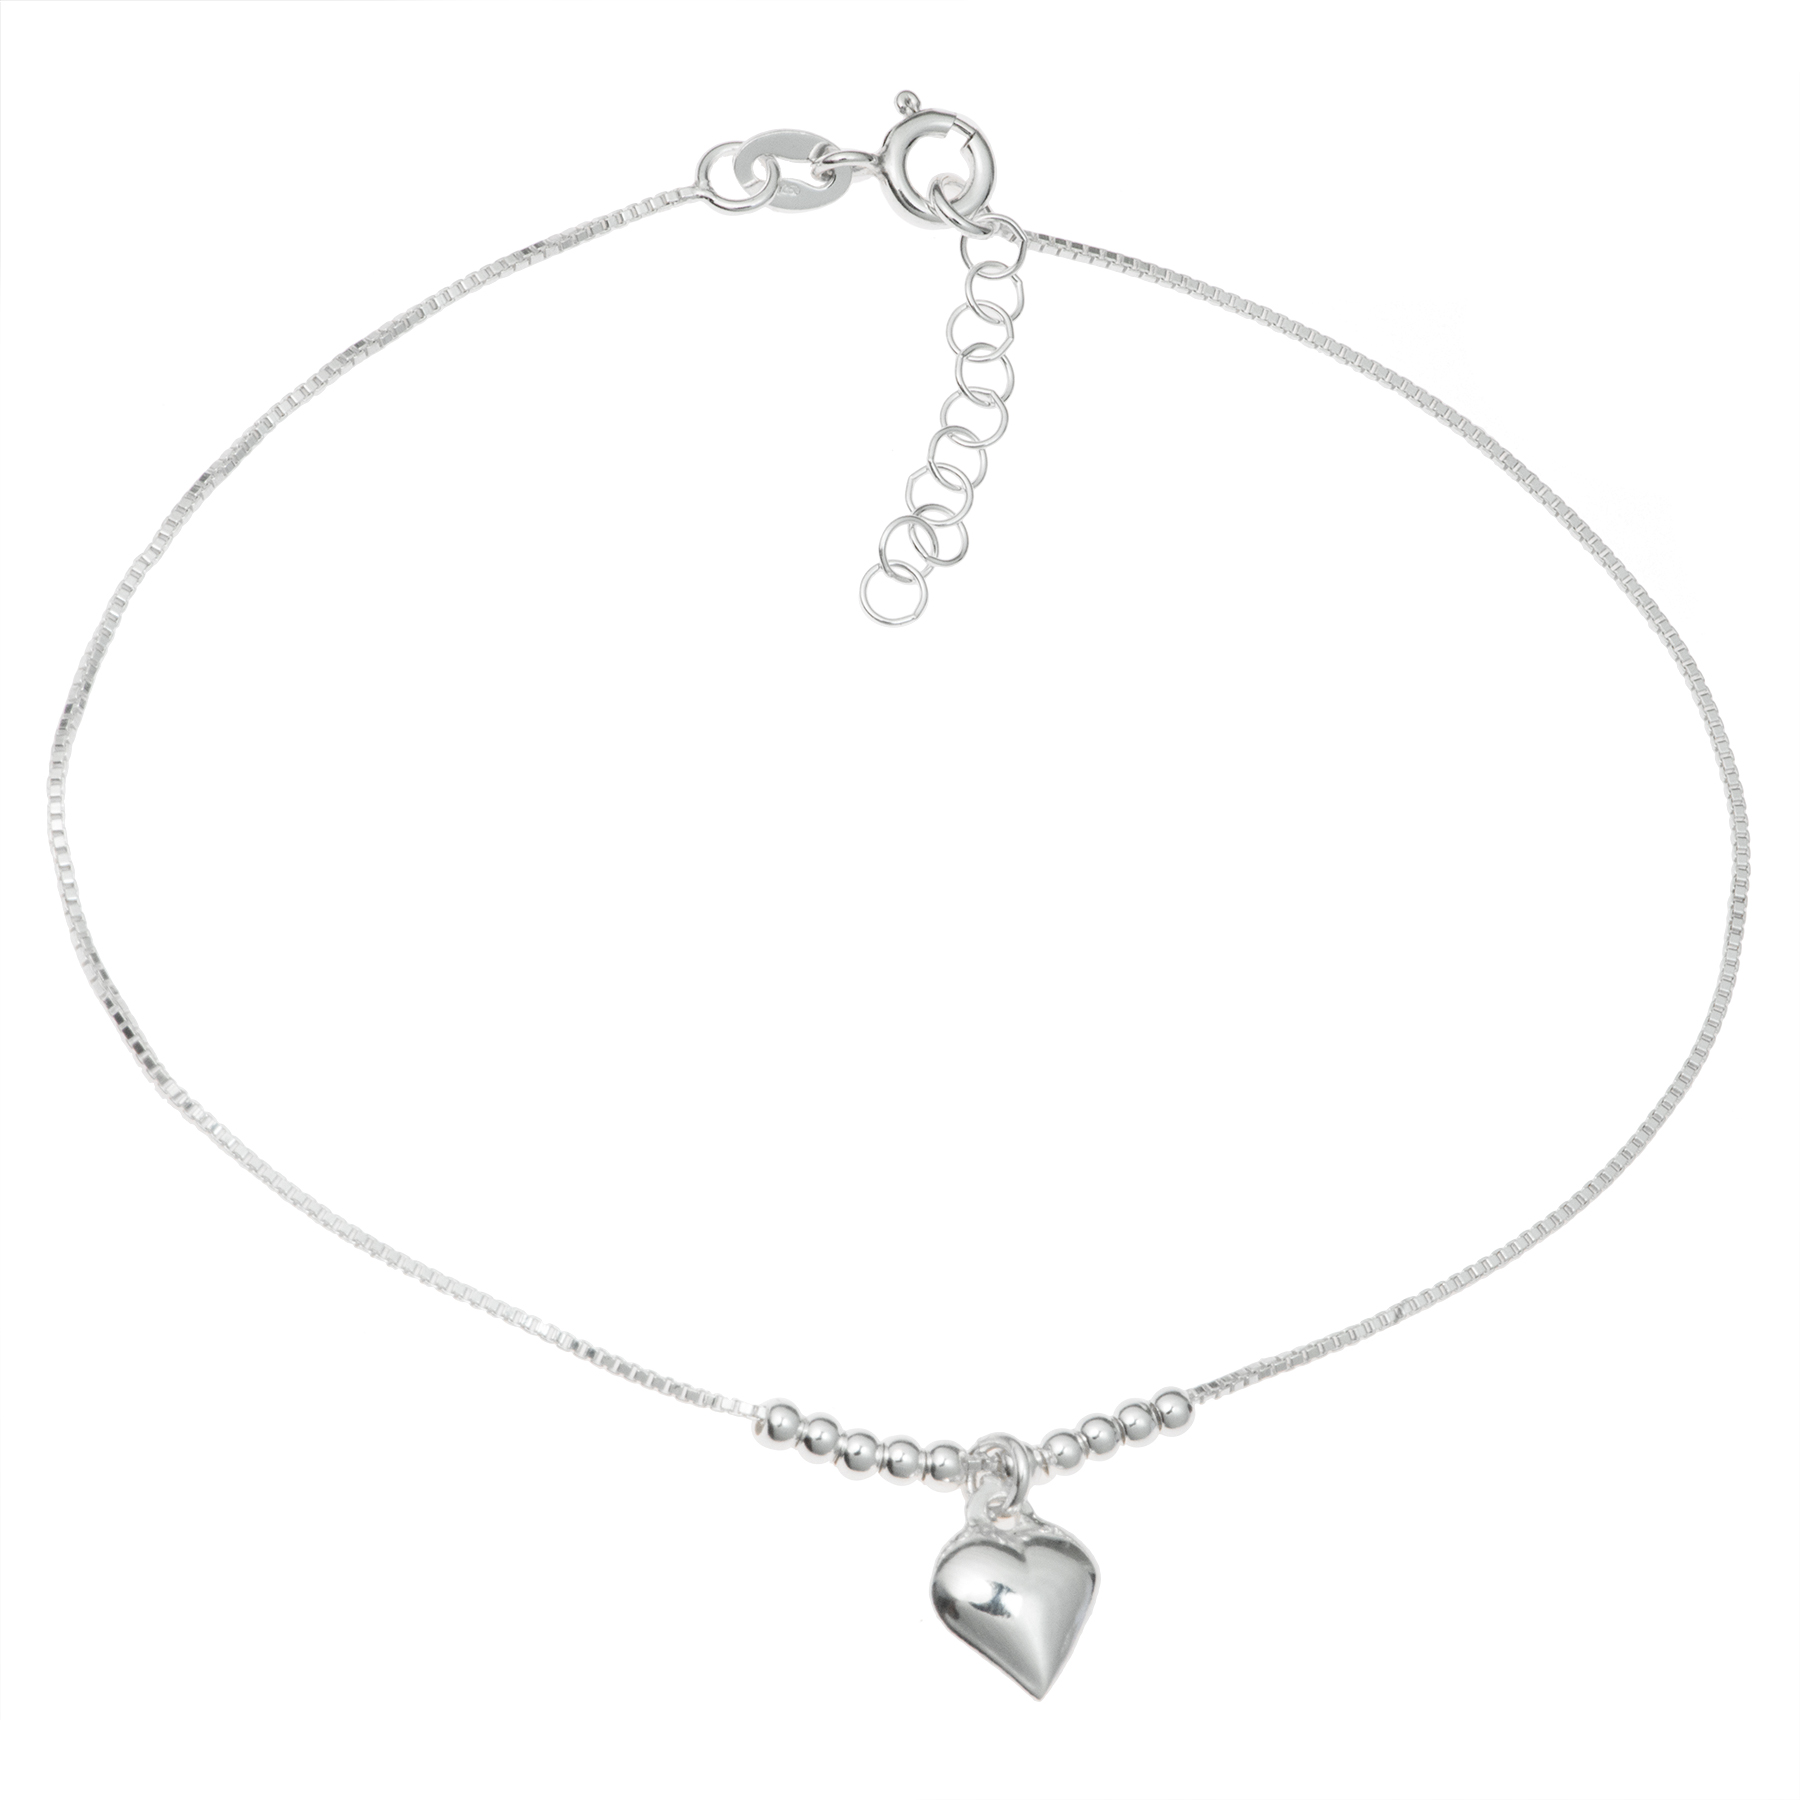 1x Sterling Silver Heart Dangle Charm Ball Bead Spacer Box Chain Anklet 9 Inches+ 1 Inch Extender